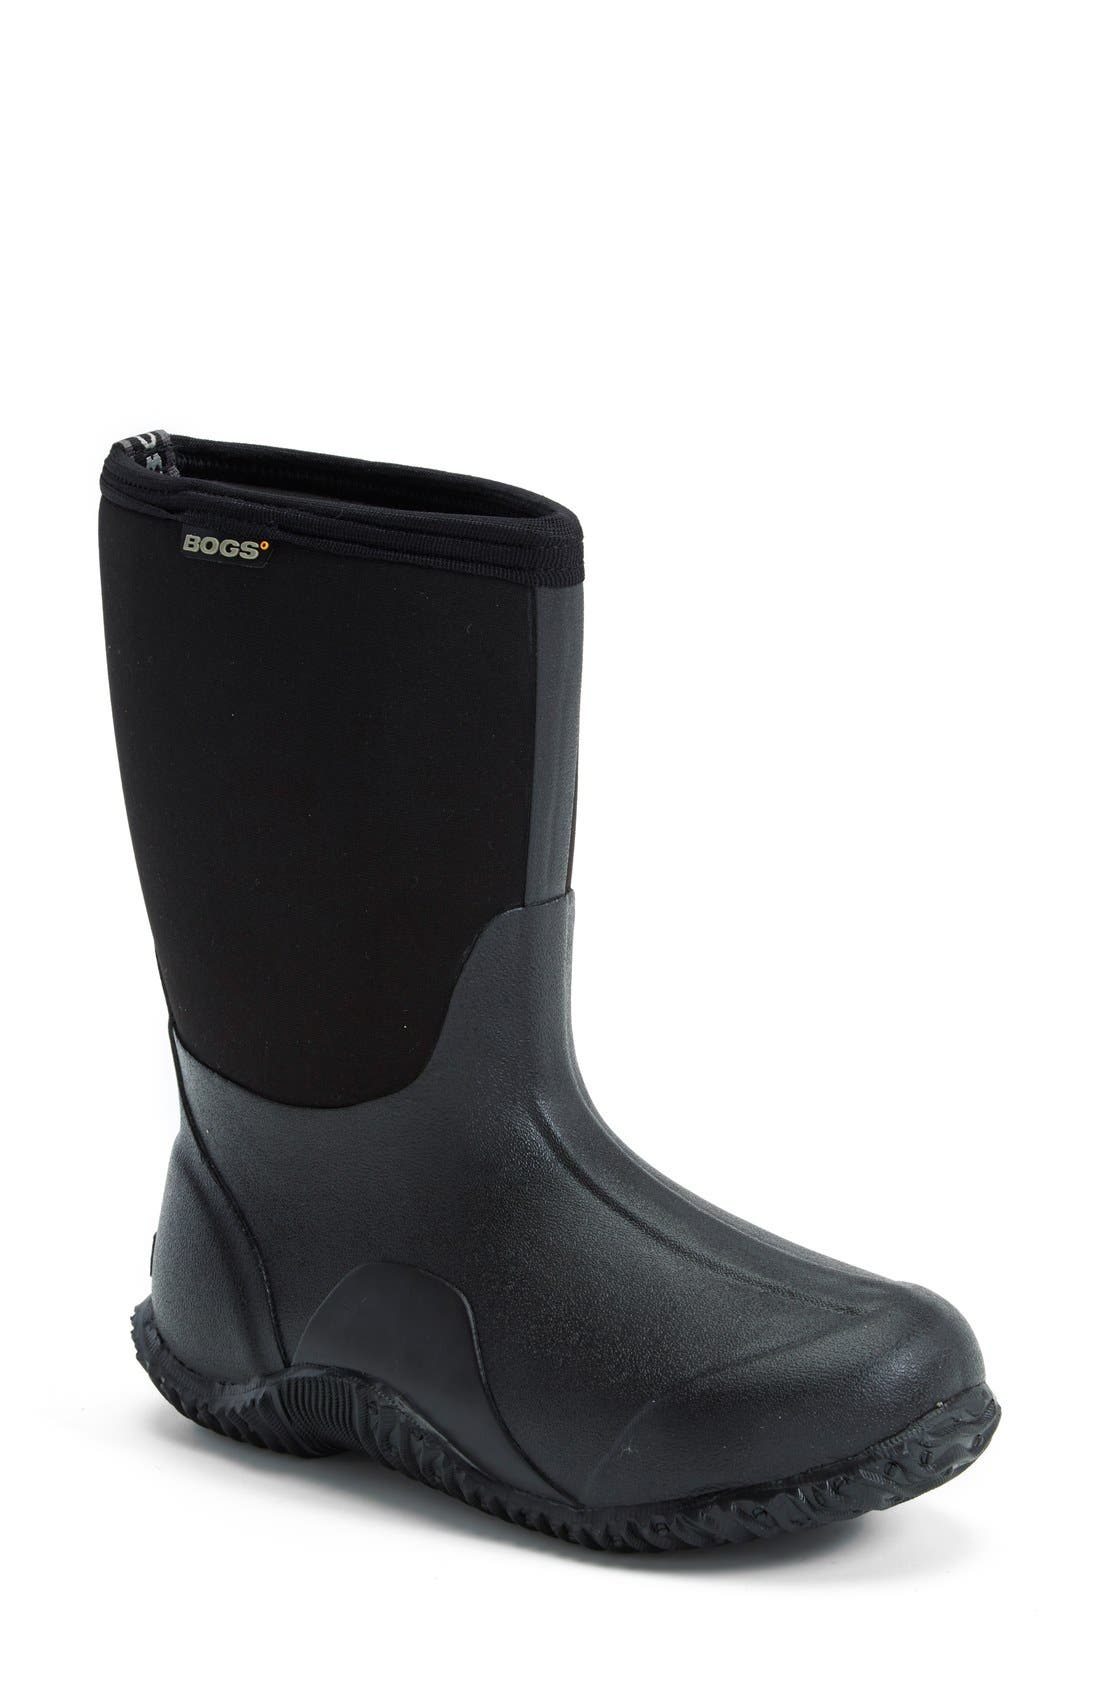 Bogs 'Classic' Mid High Waterproof Snow Boot (Women)